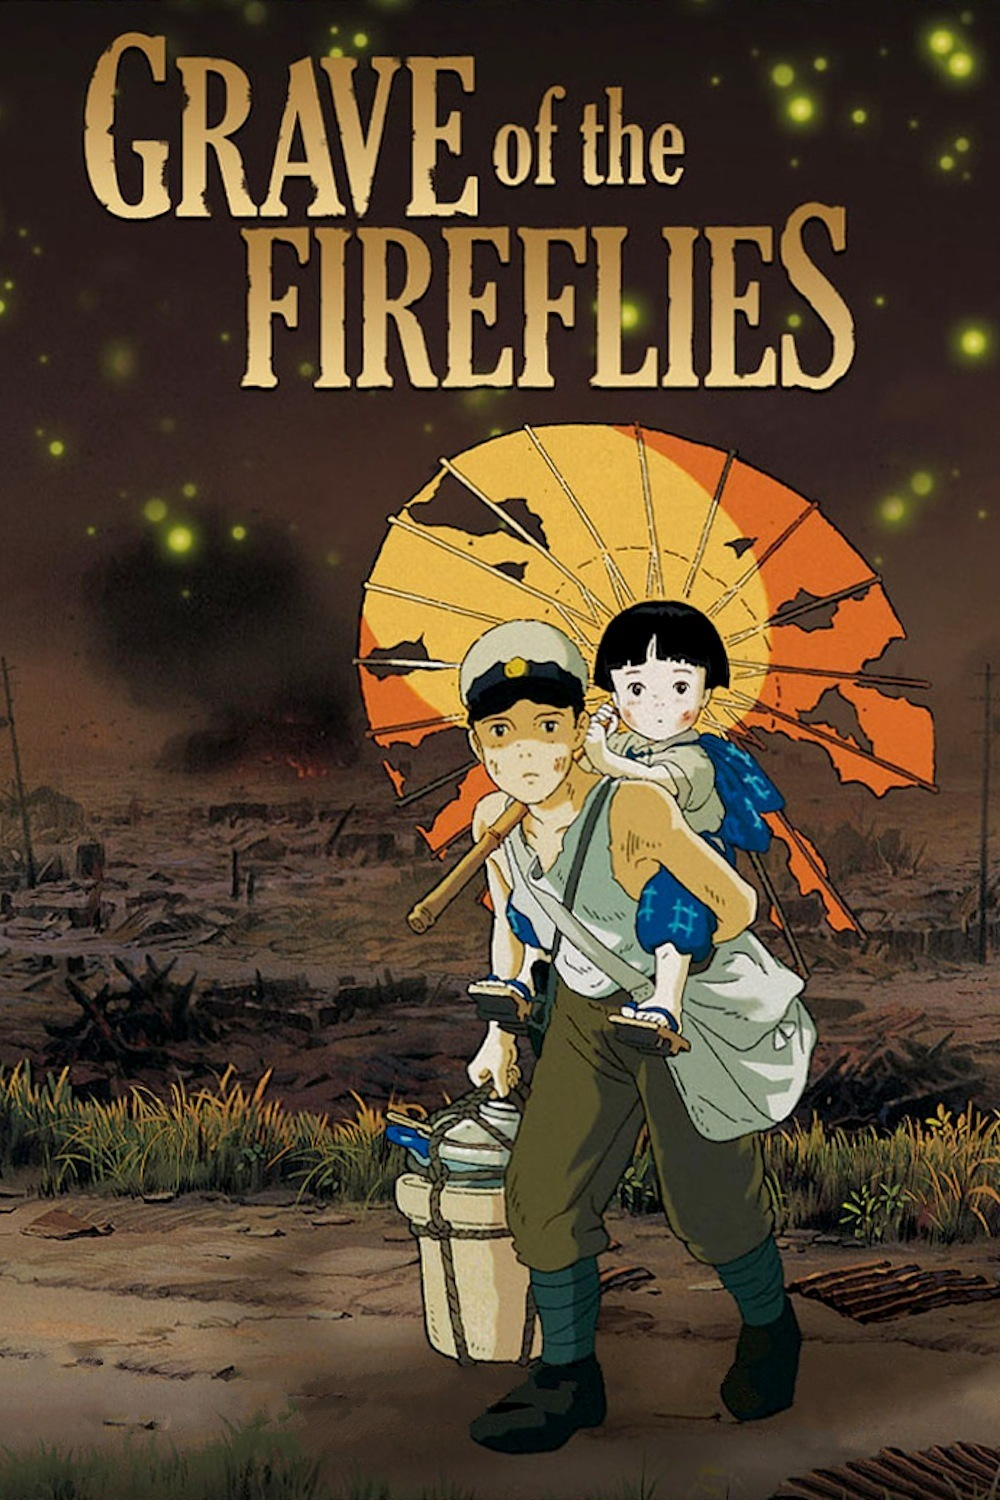 36 Grave-of-the-fireflies